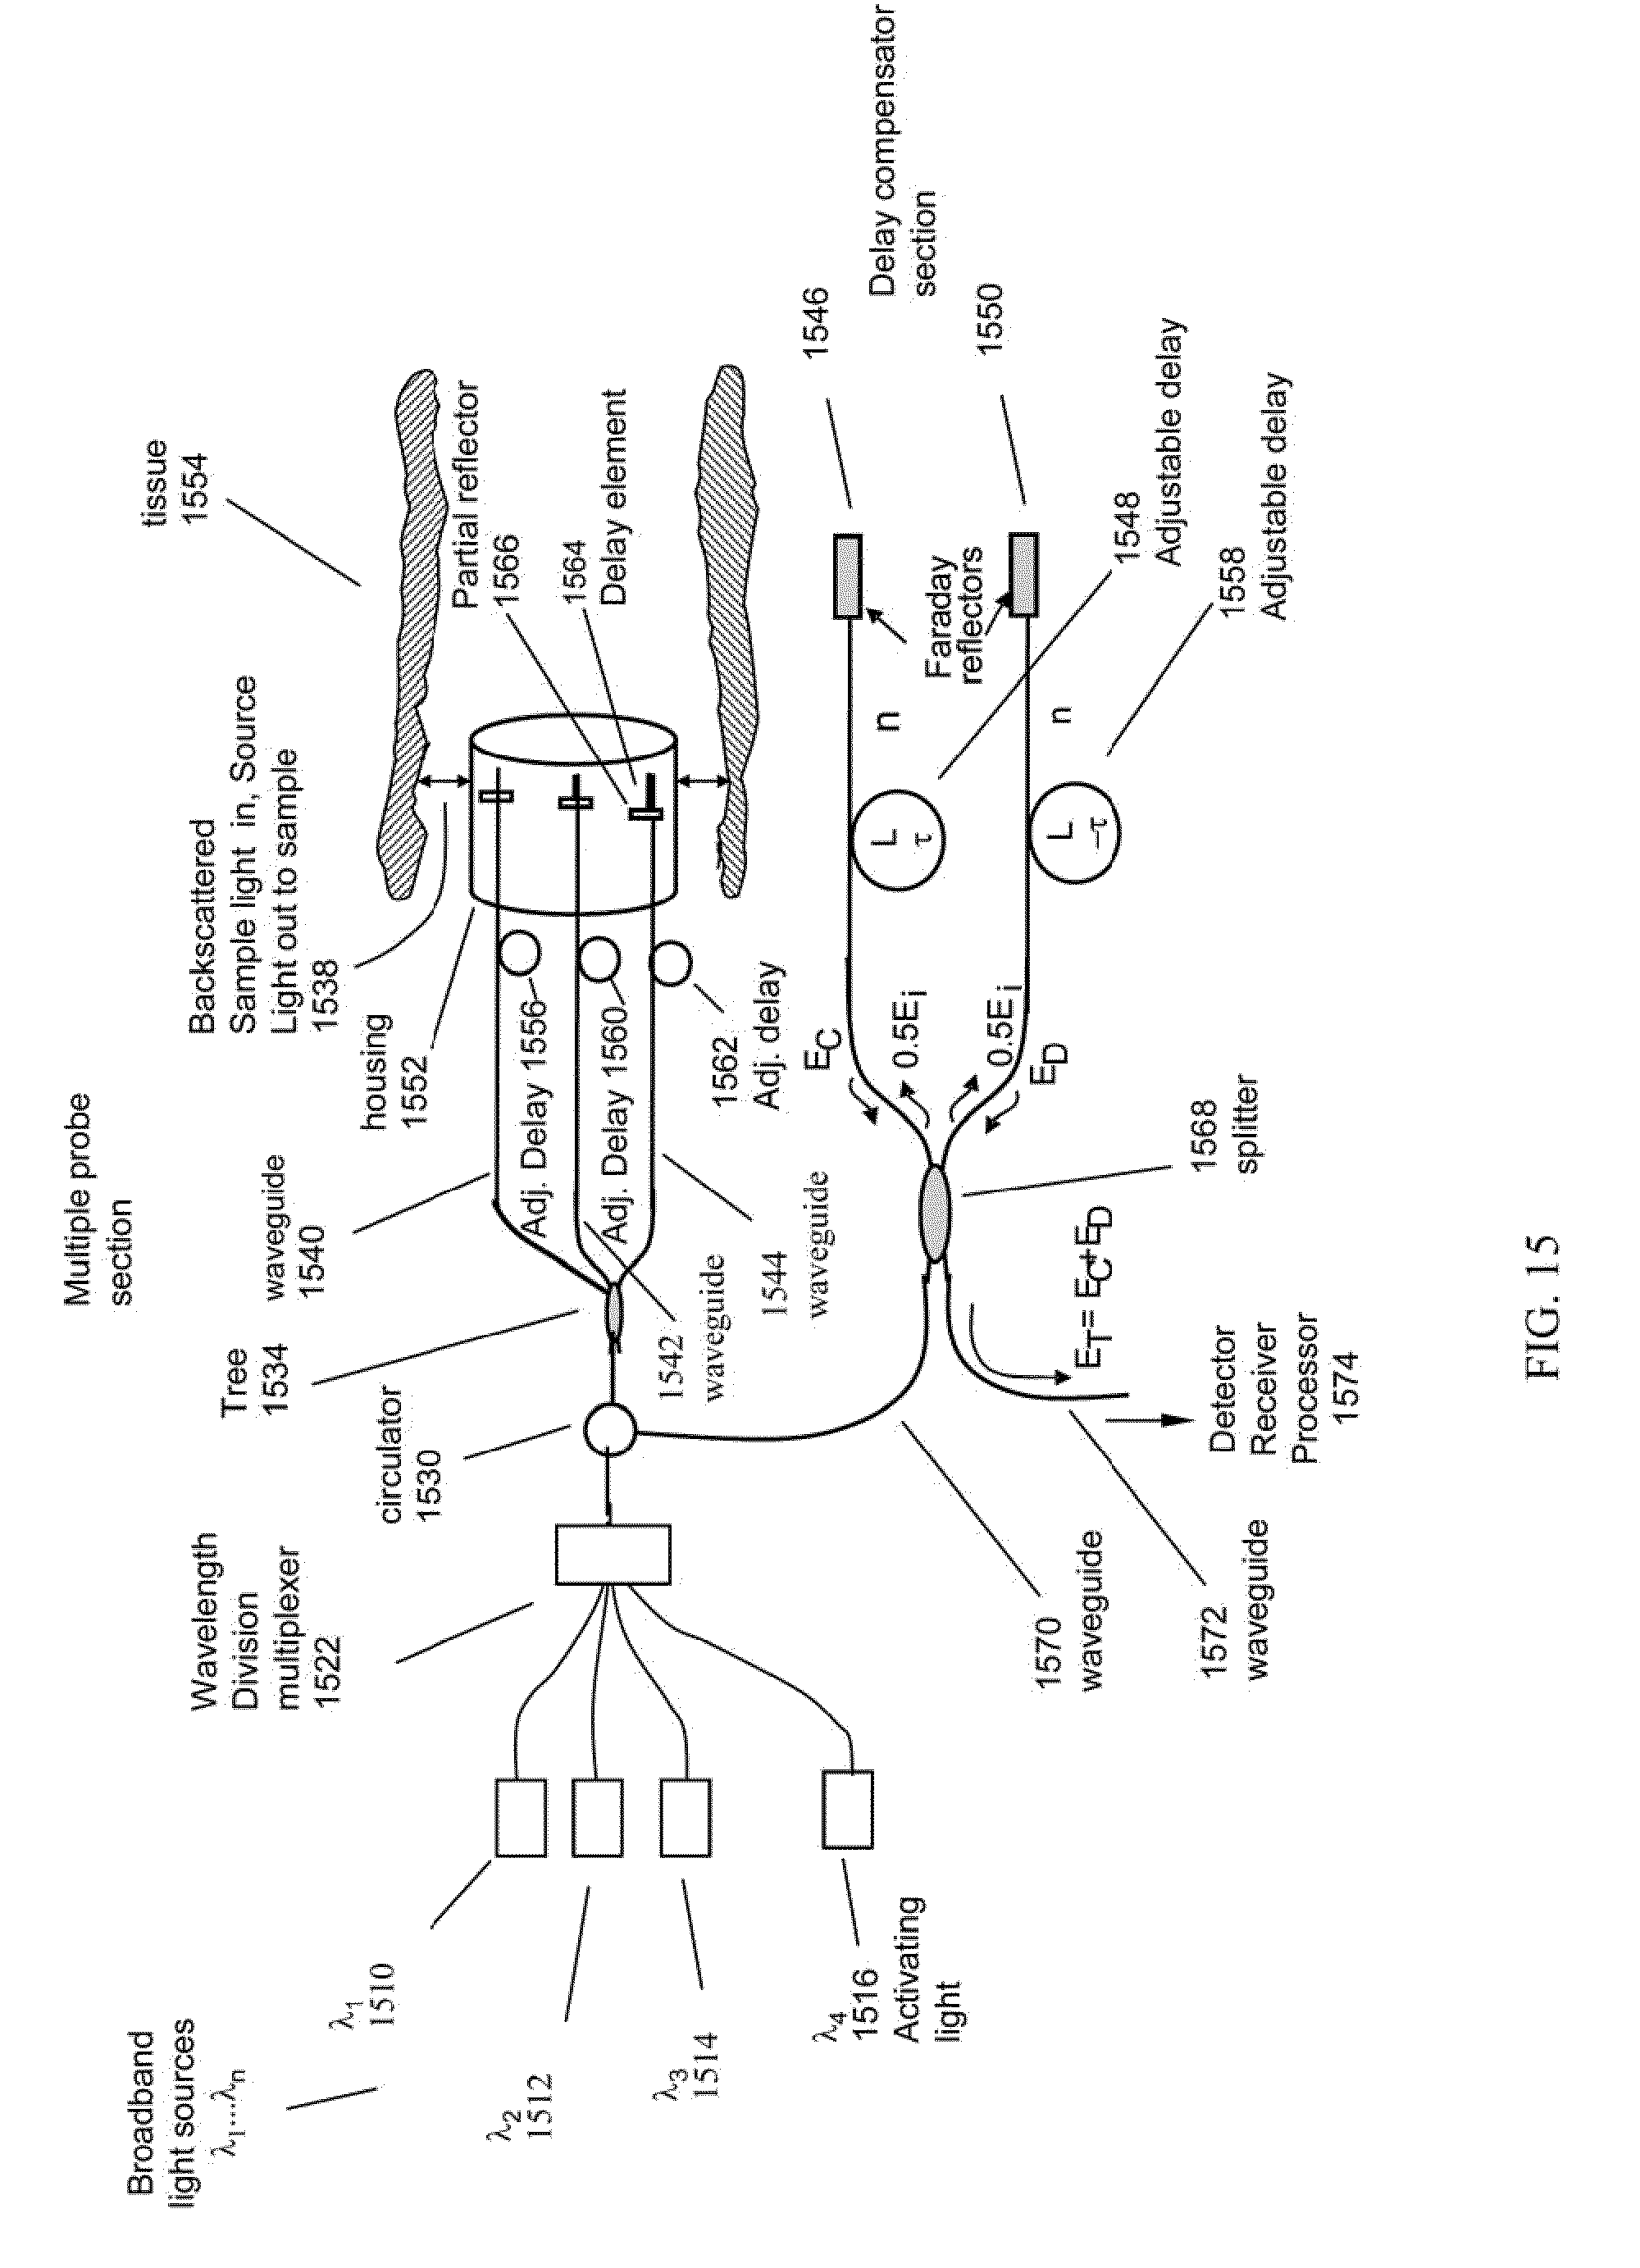 patent us20100053632 - single trace multi-channel low coherence interferometric sensor